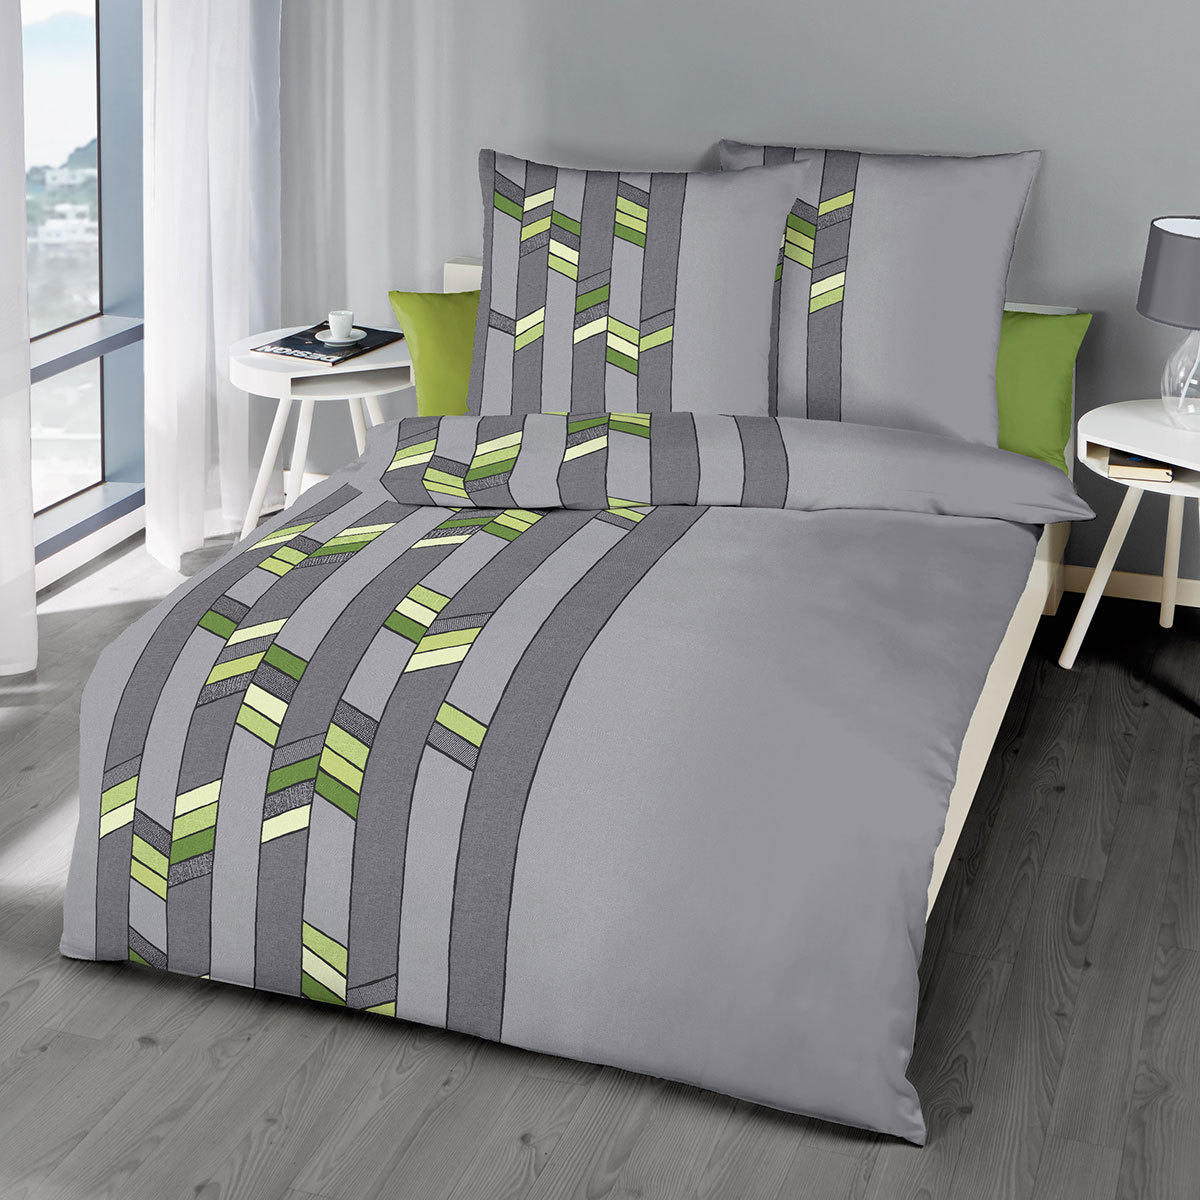 kaeppel mako satin bettw sche broken kiwi g nstig online kaufen bei bettwaren shop. Black Bedroom Furniture Sets. Home Design Ideas